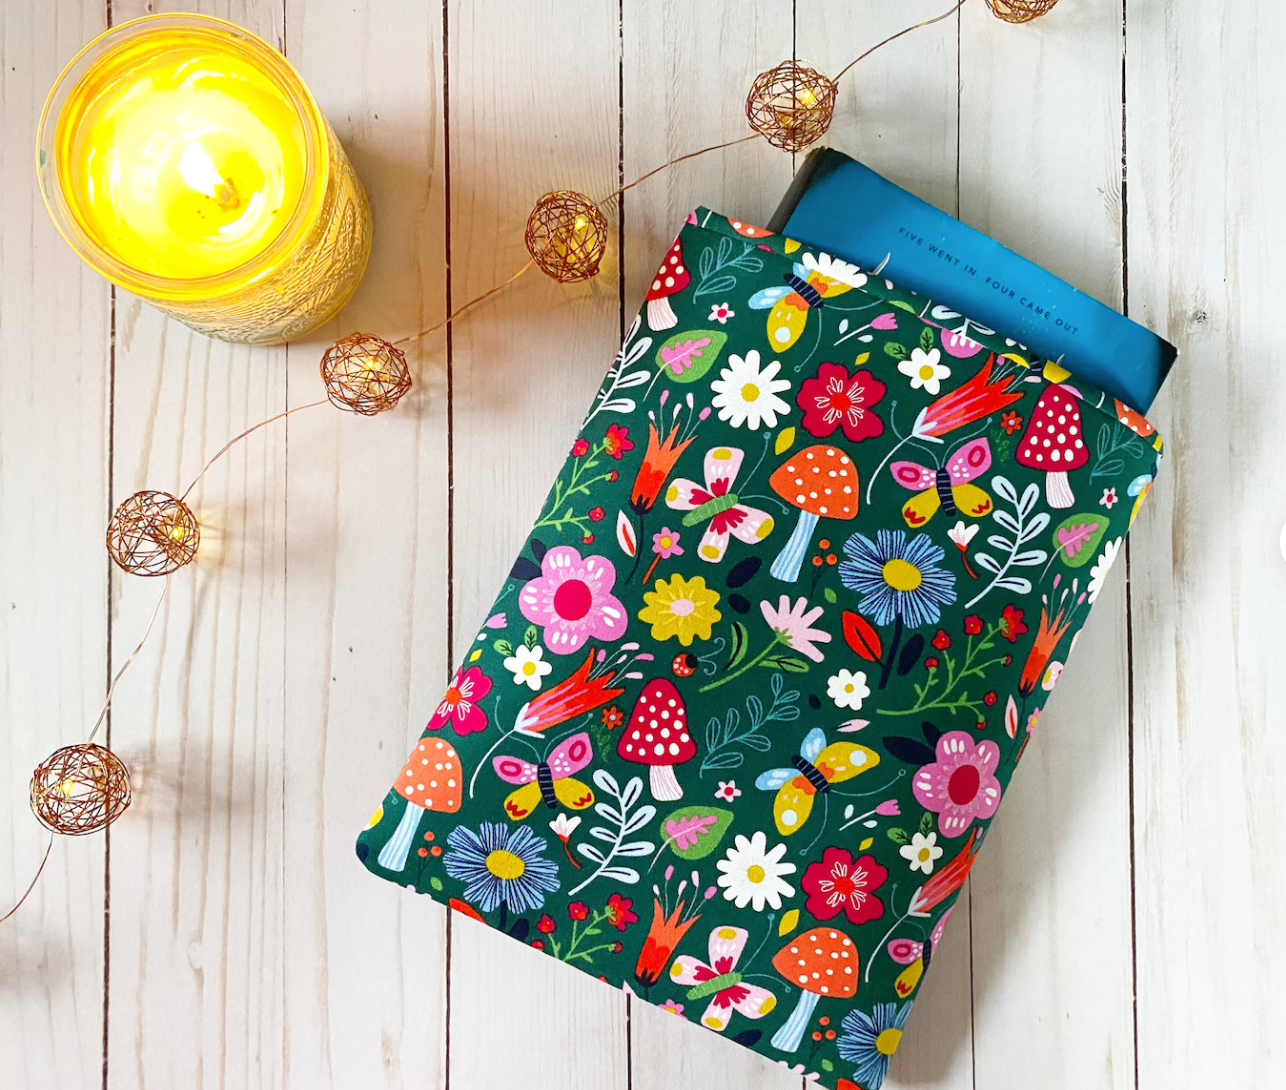 Image of a green book sleeve covered in mushrooms and flowers in bright colors.